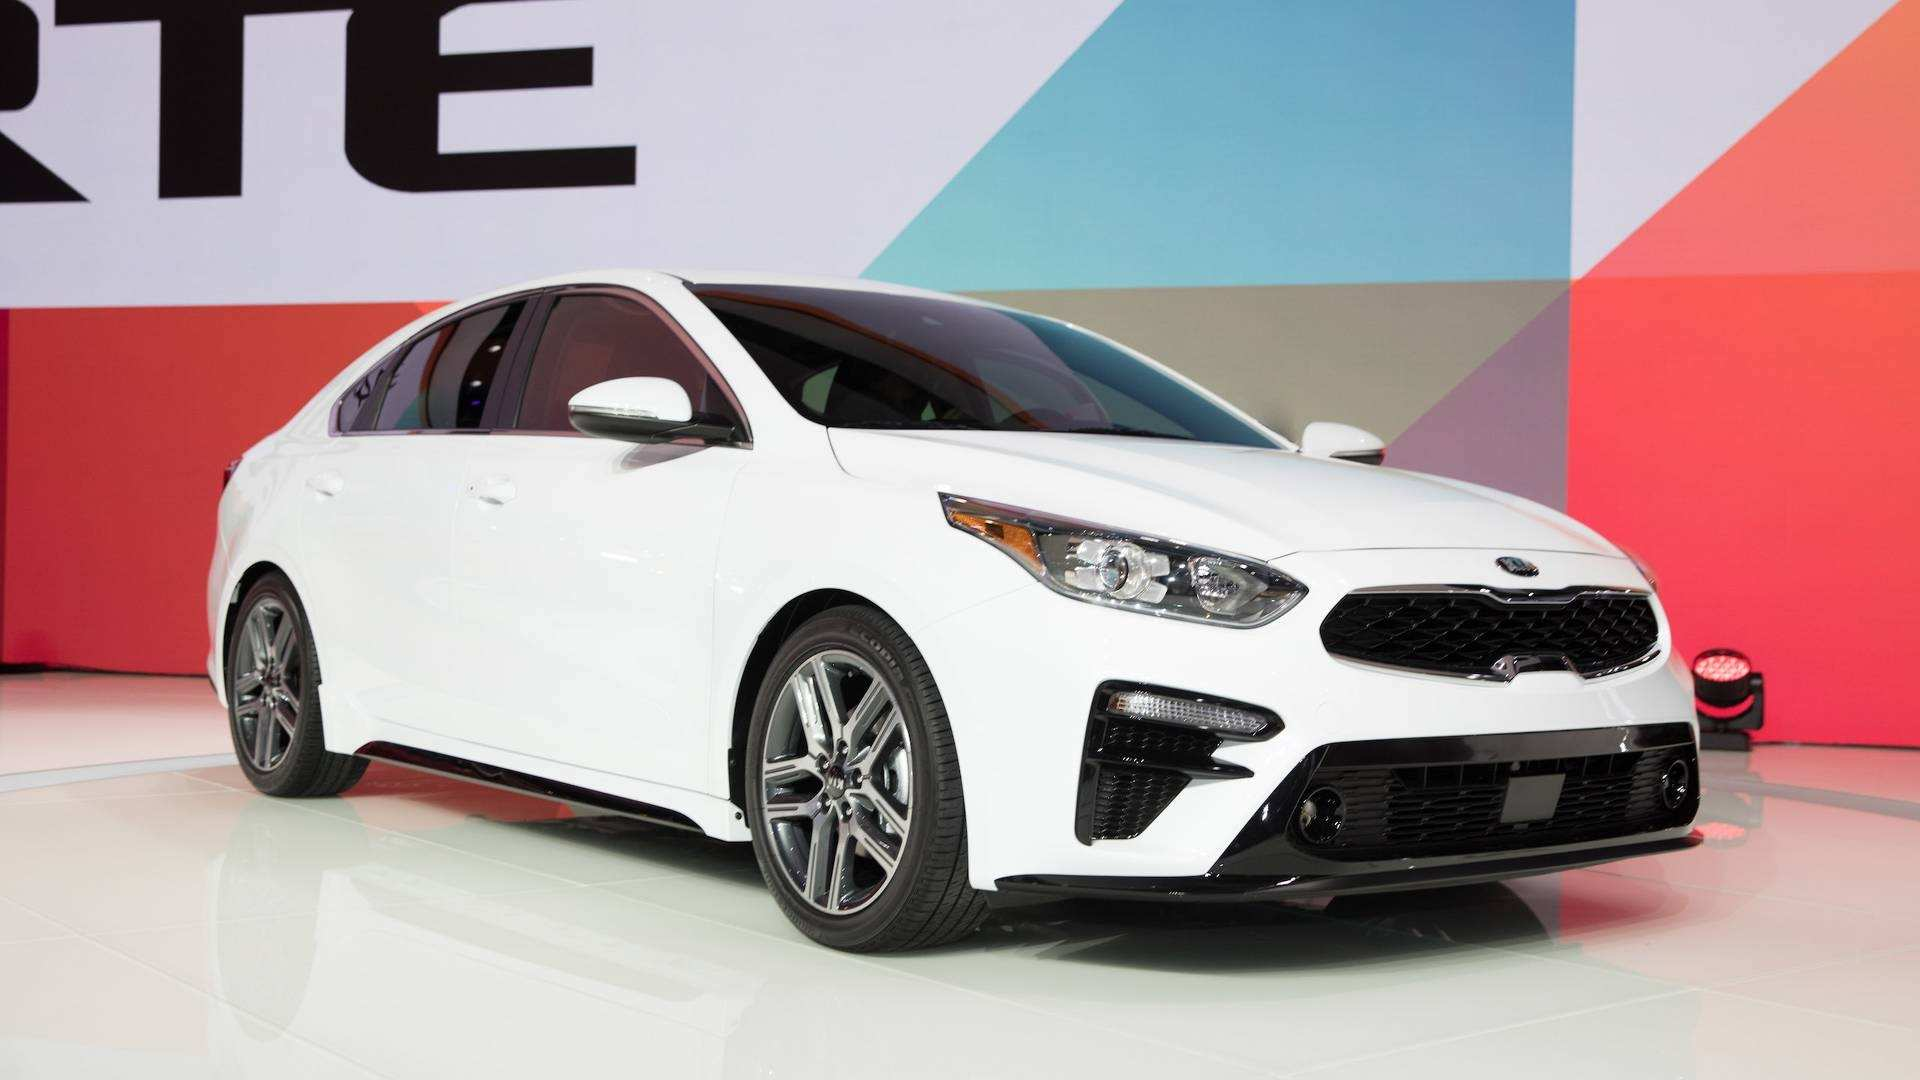 49 New 2019 Kia Gt Coupe First Drive with 2019 Kia Gt Coupe